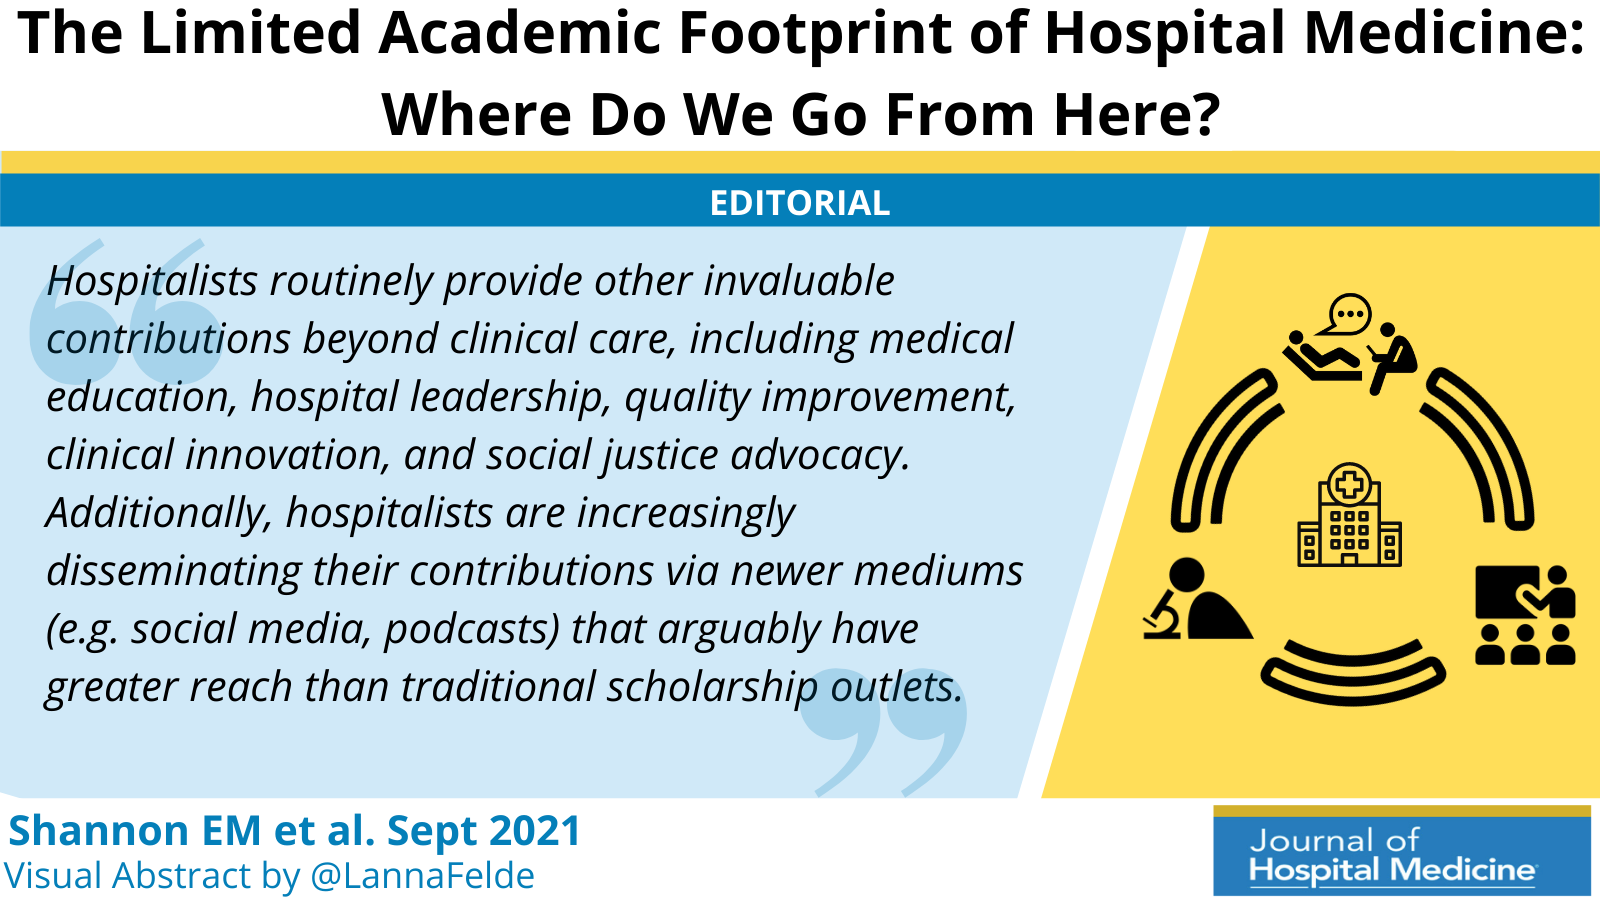 The Limited Academic Footprint of Hospital Medicine: Where Do We Go From Here?